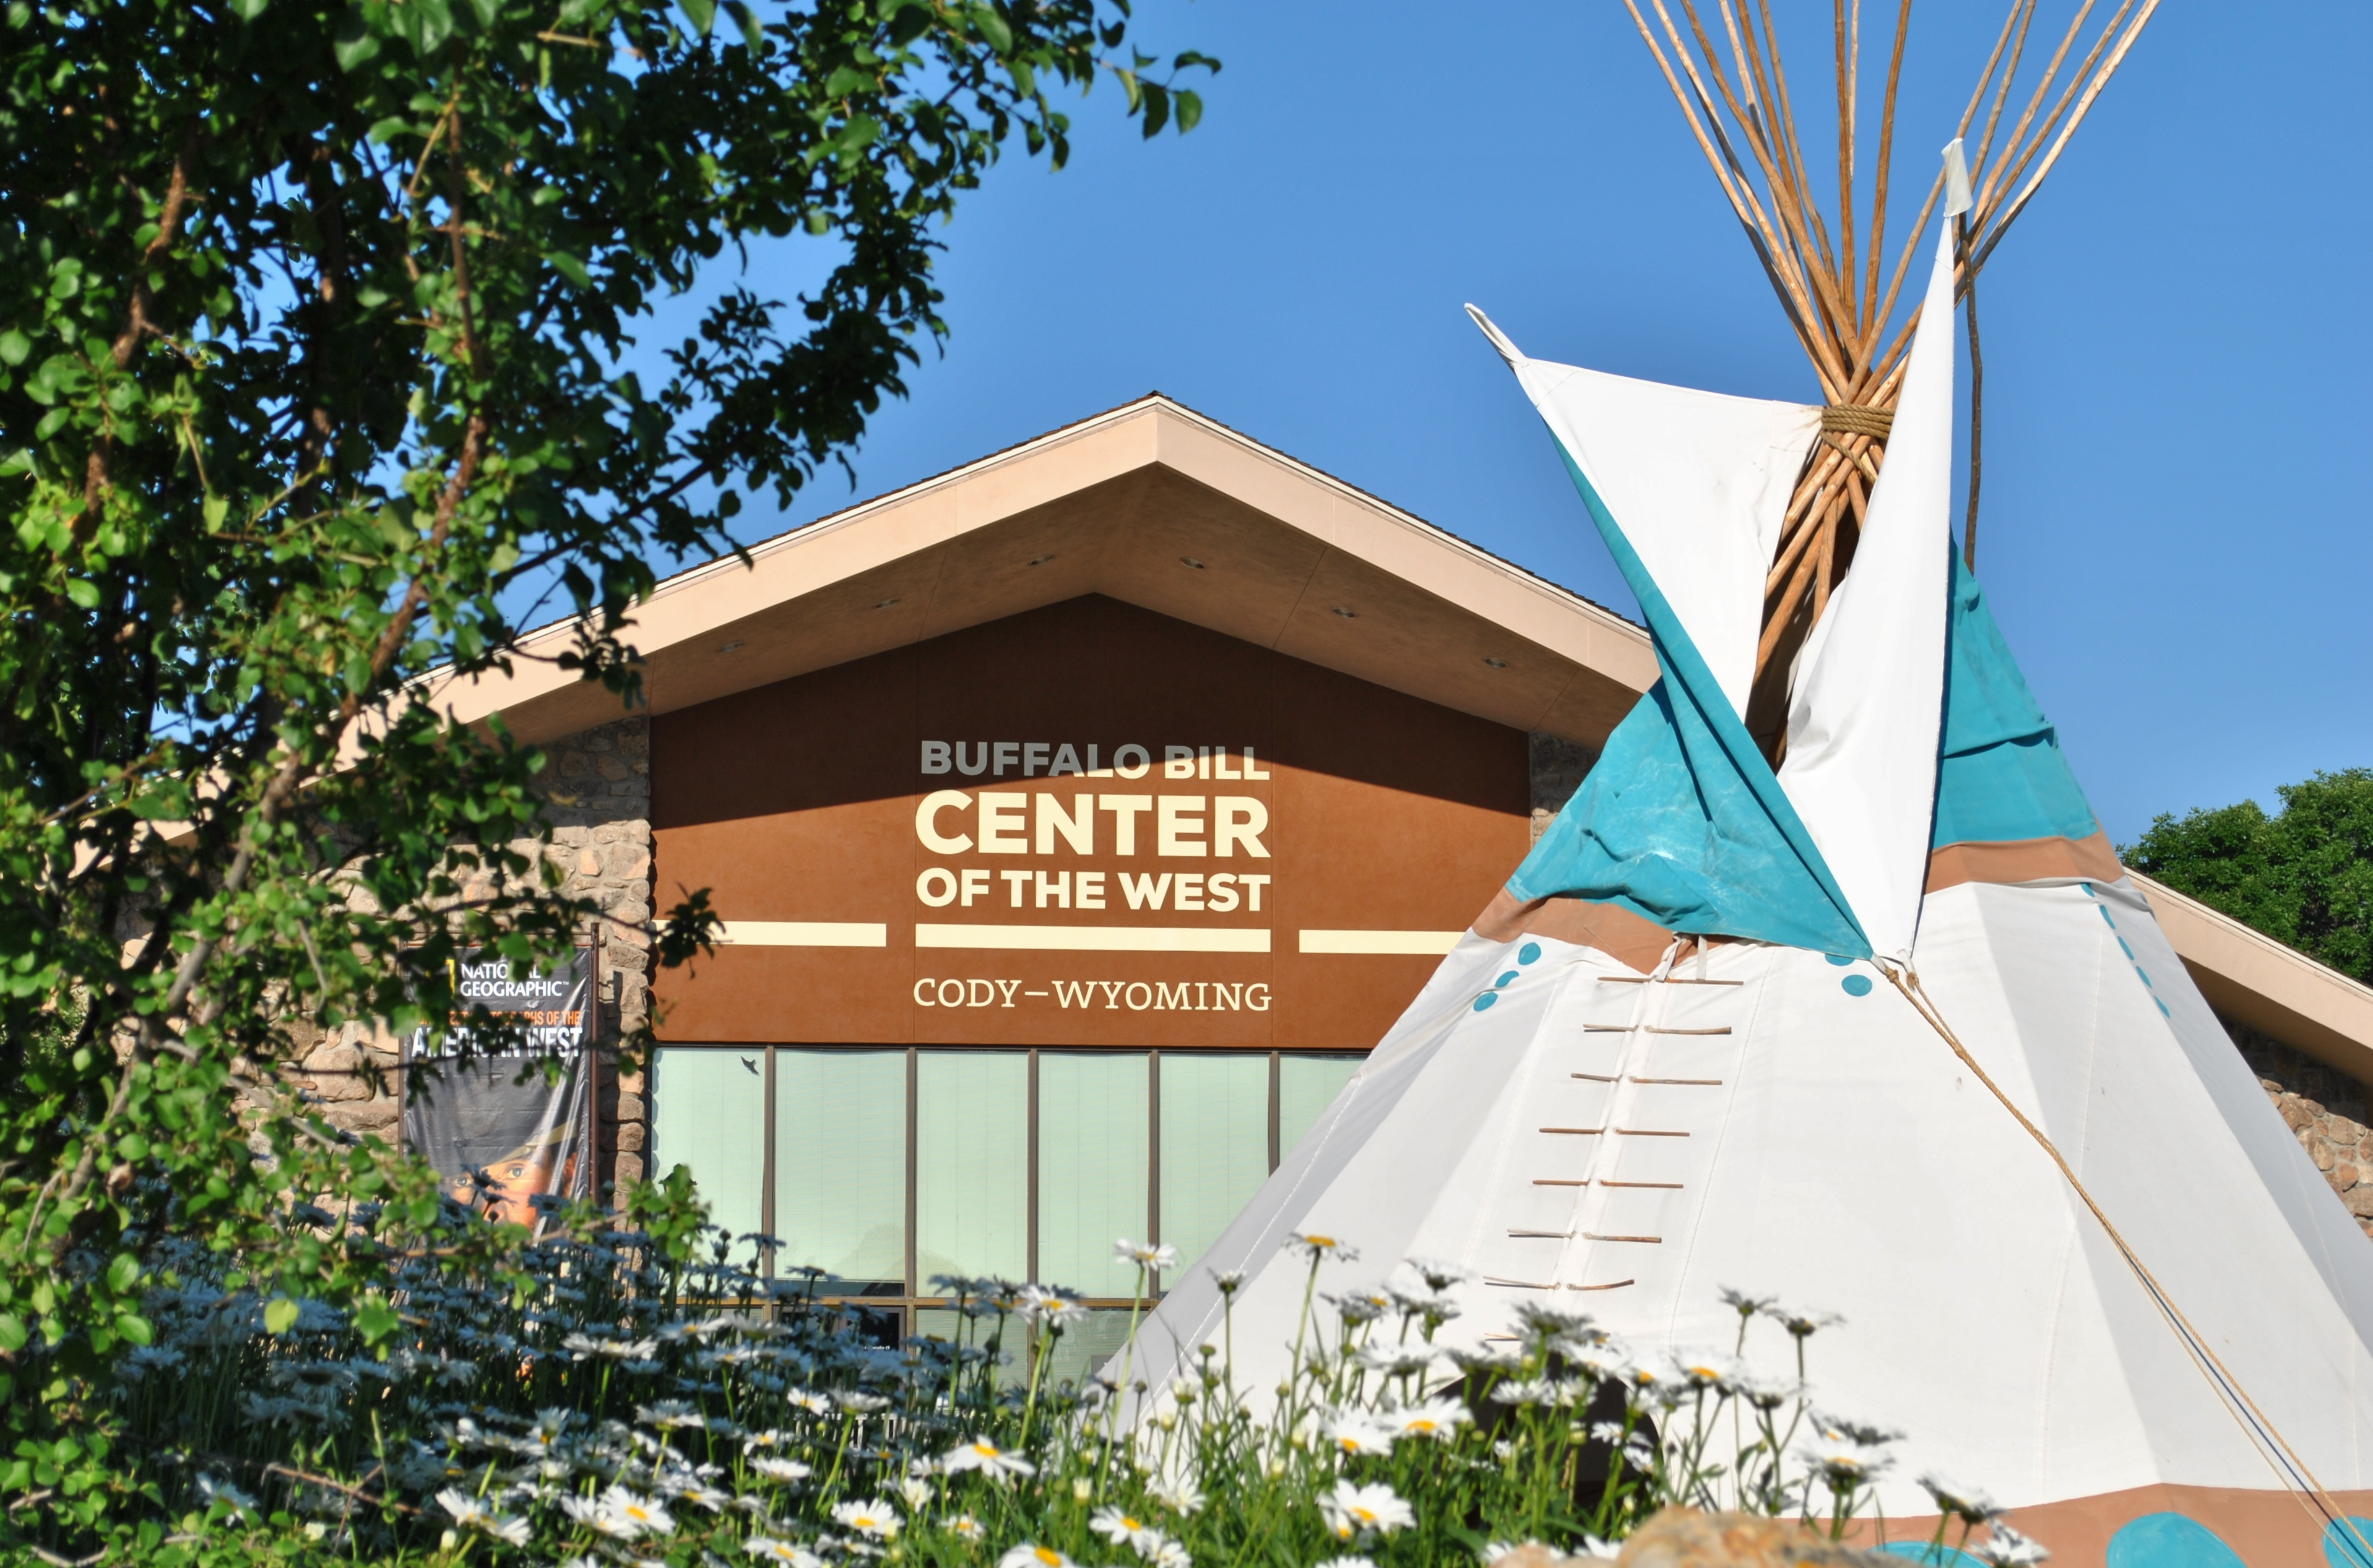 Cody Yellowstone — An a-framed museum with tepee in the background.